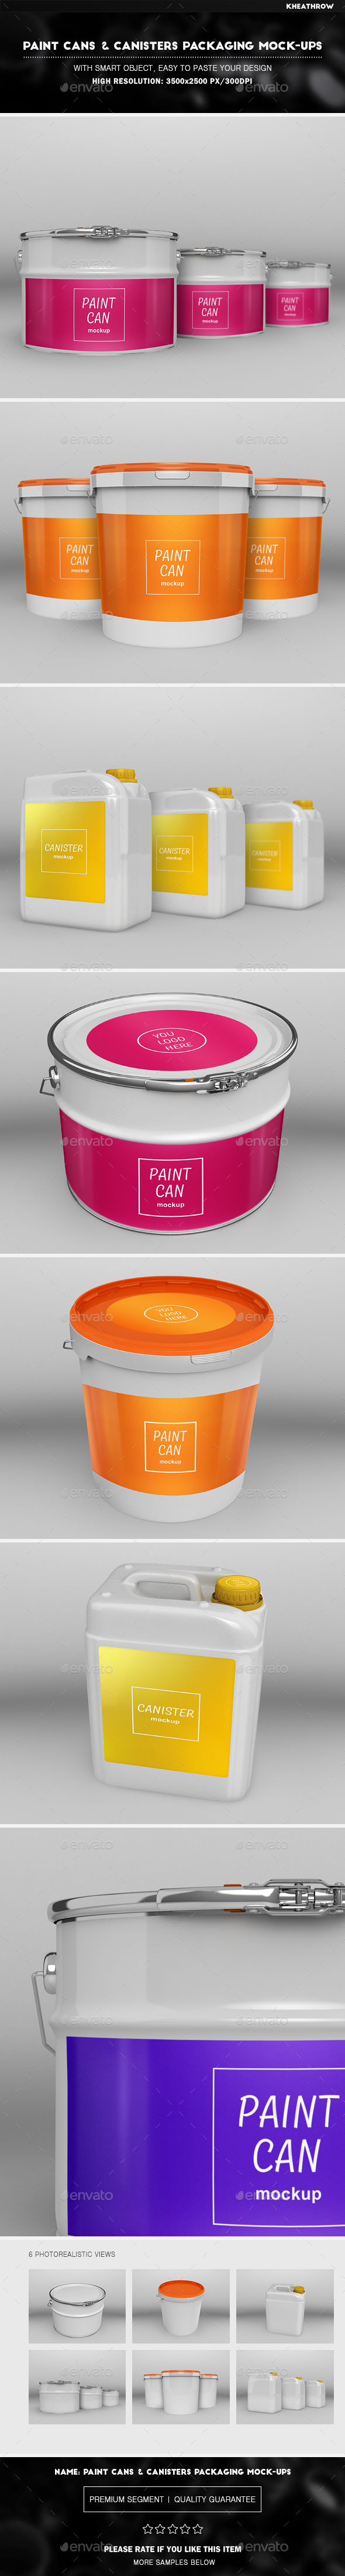 Paint Cans and Canisters Packaging Mock-Ups - Miscellaneous Packaging